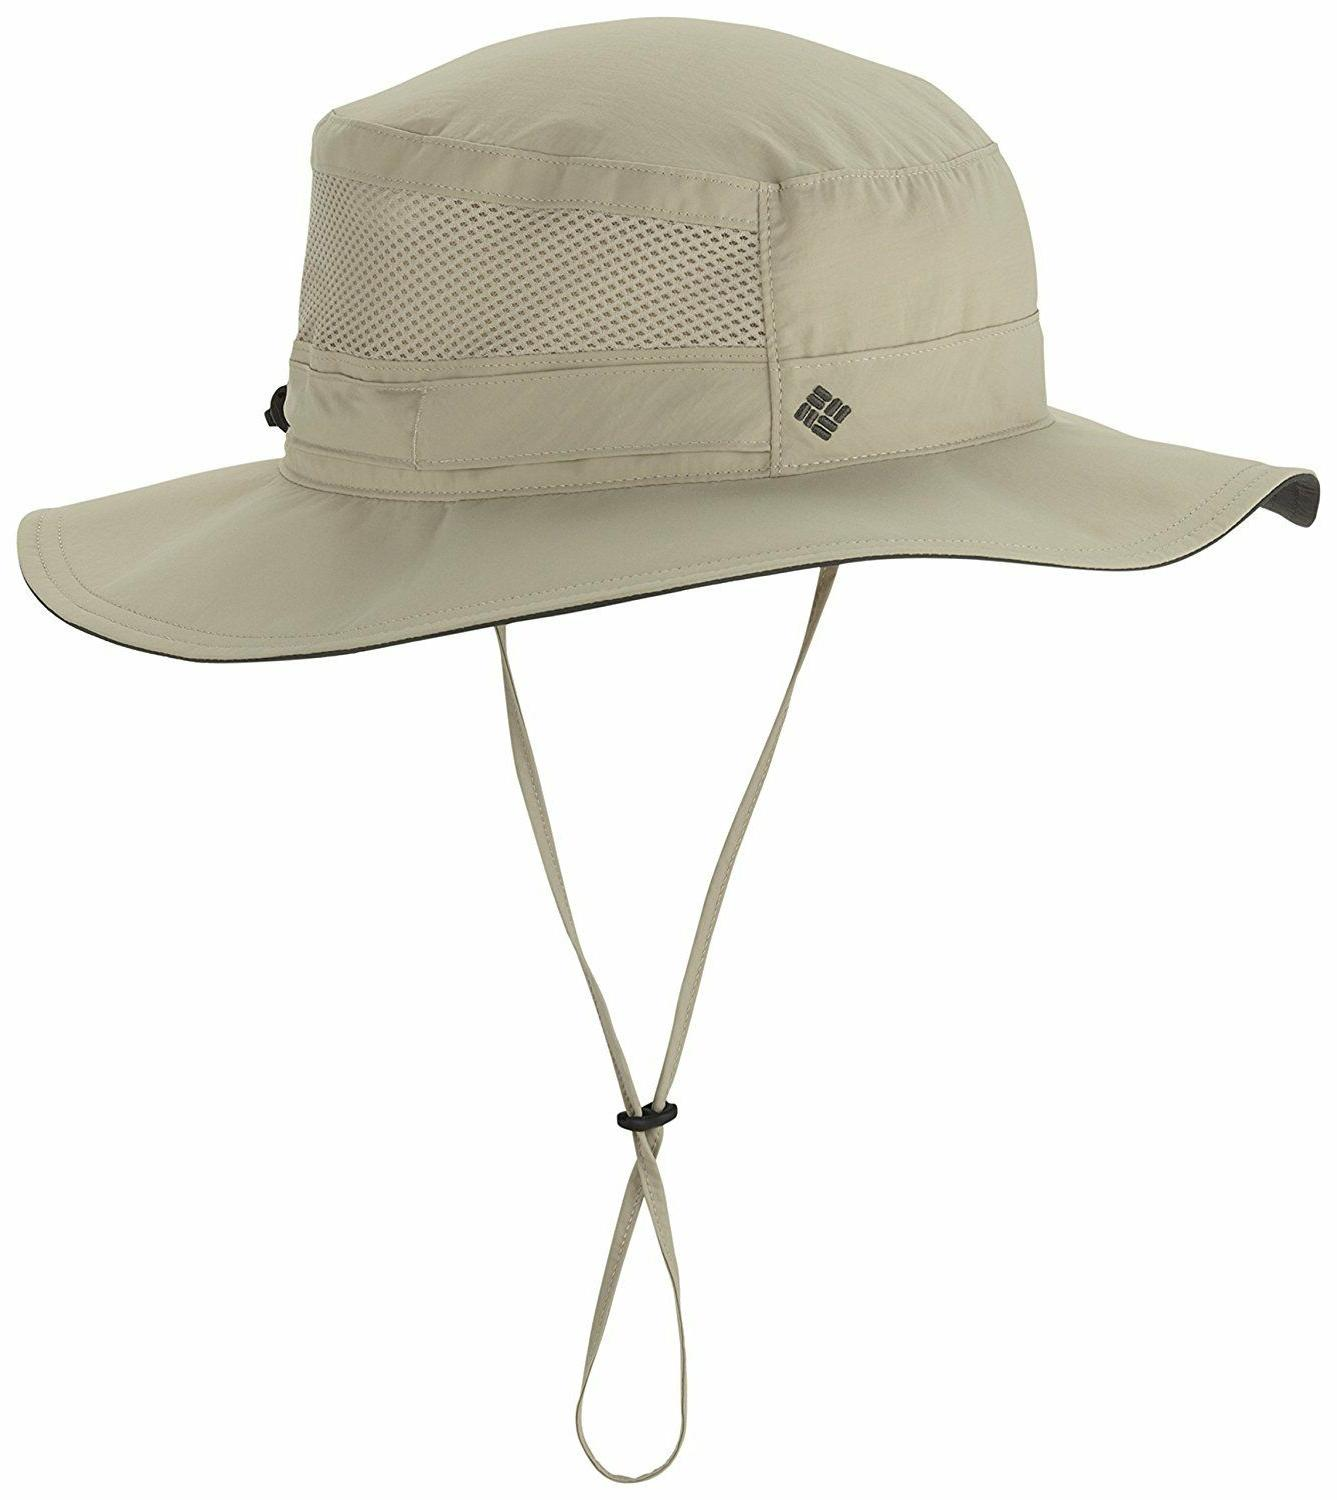 Columbia Booney fishing Cap, Unstructured